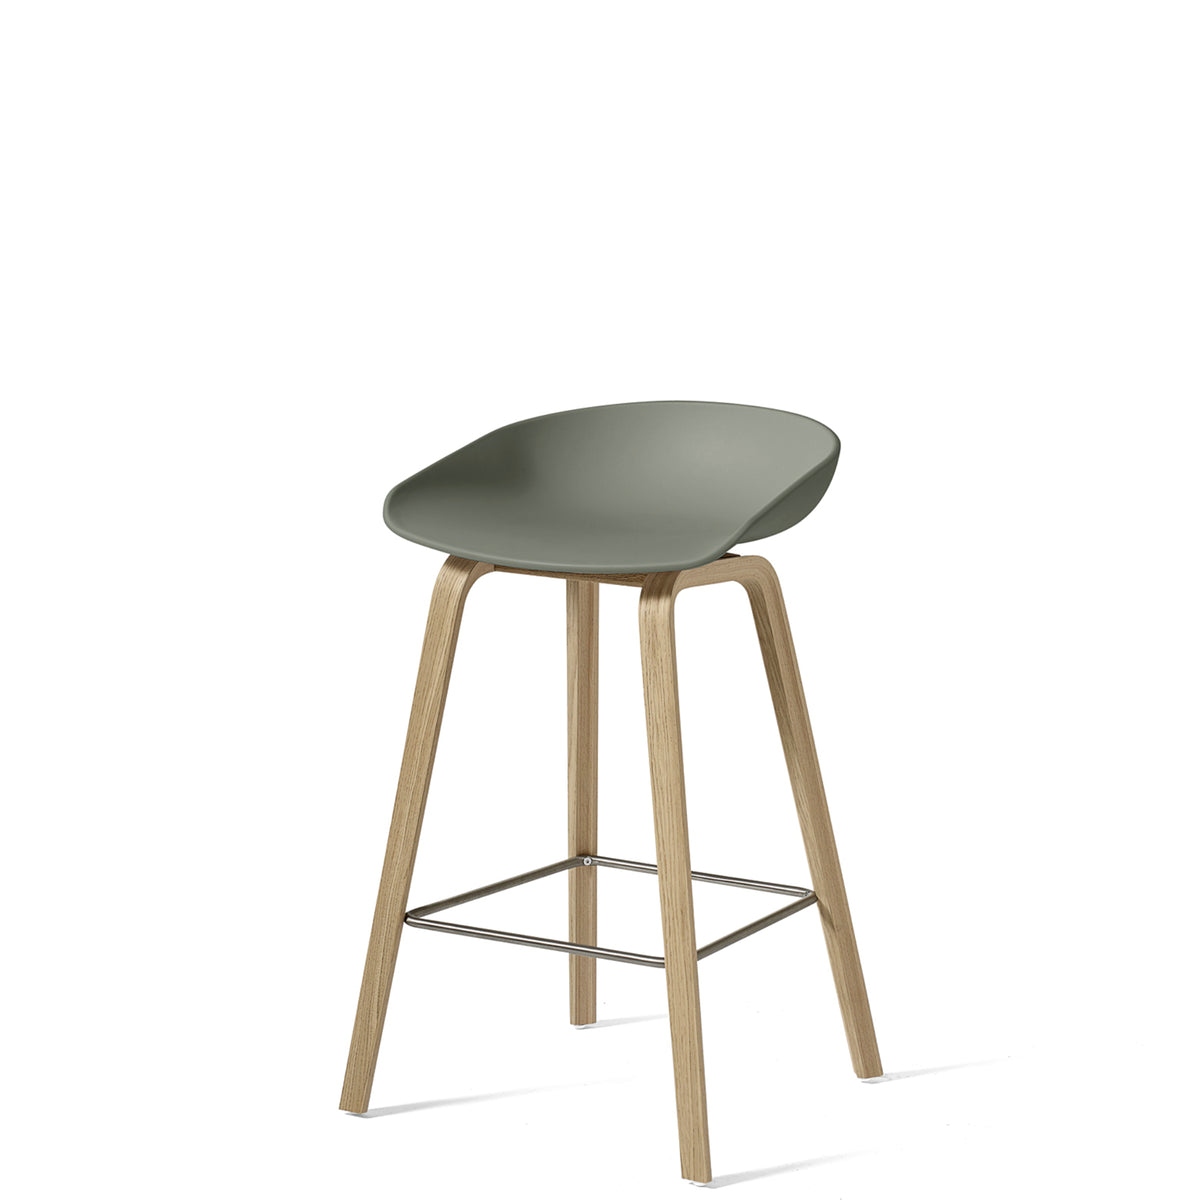 HAY About A Stool AAS32 750mm Dusty Green with Matt Lacquered Oak Base